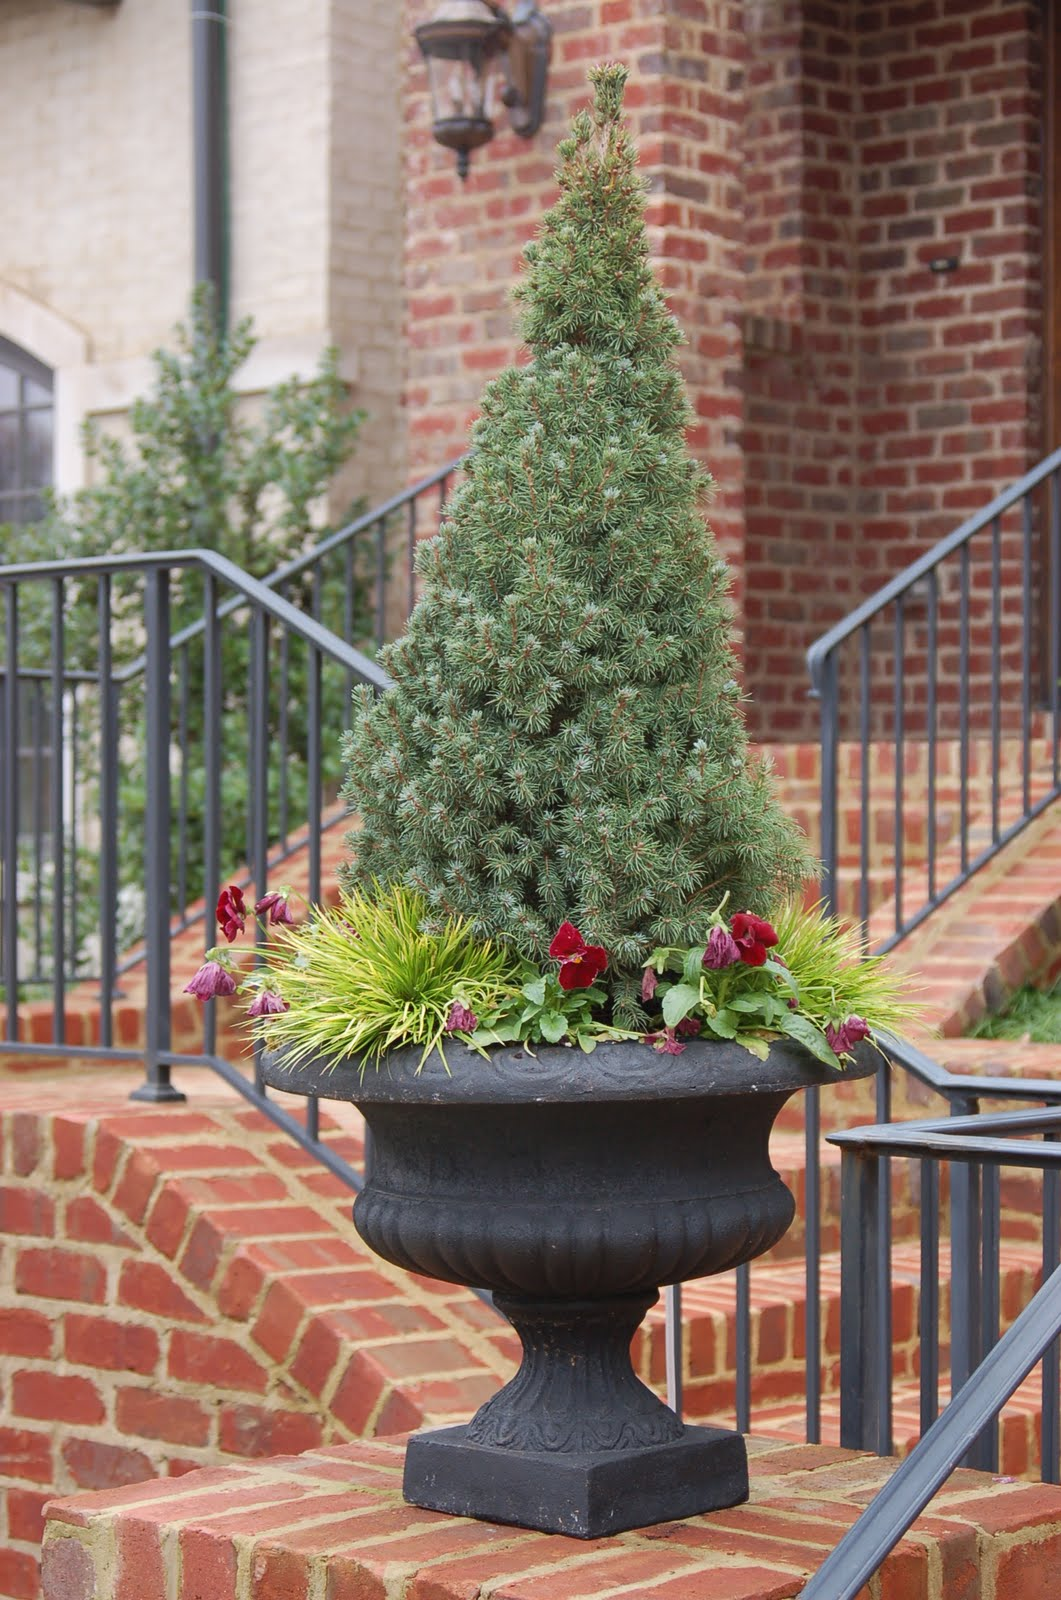 Day 58 - Christmas Tree Containers